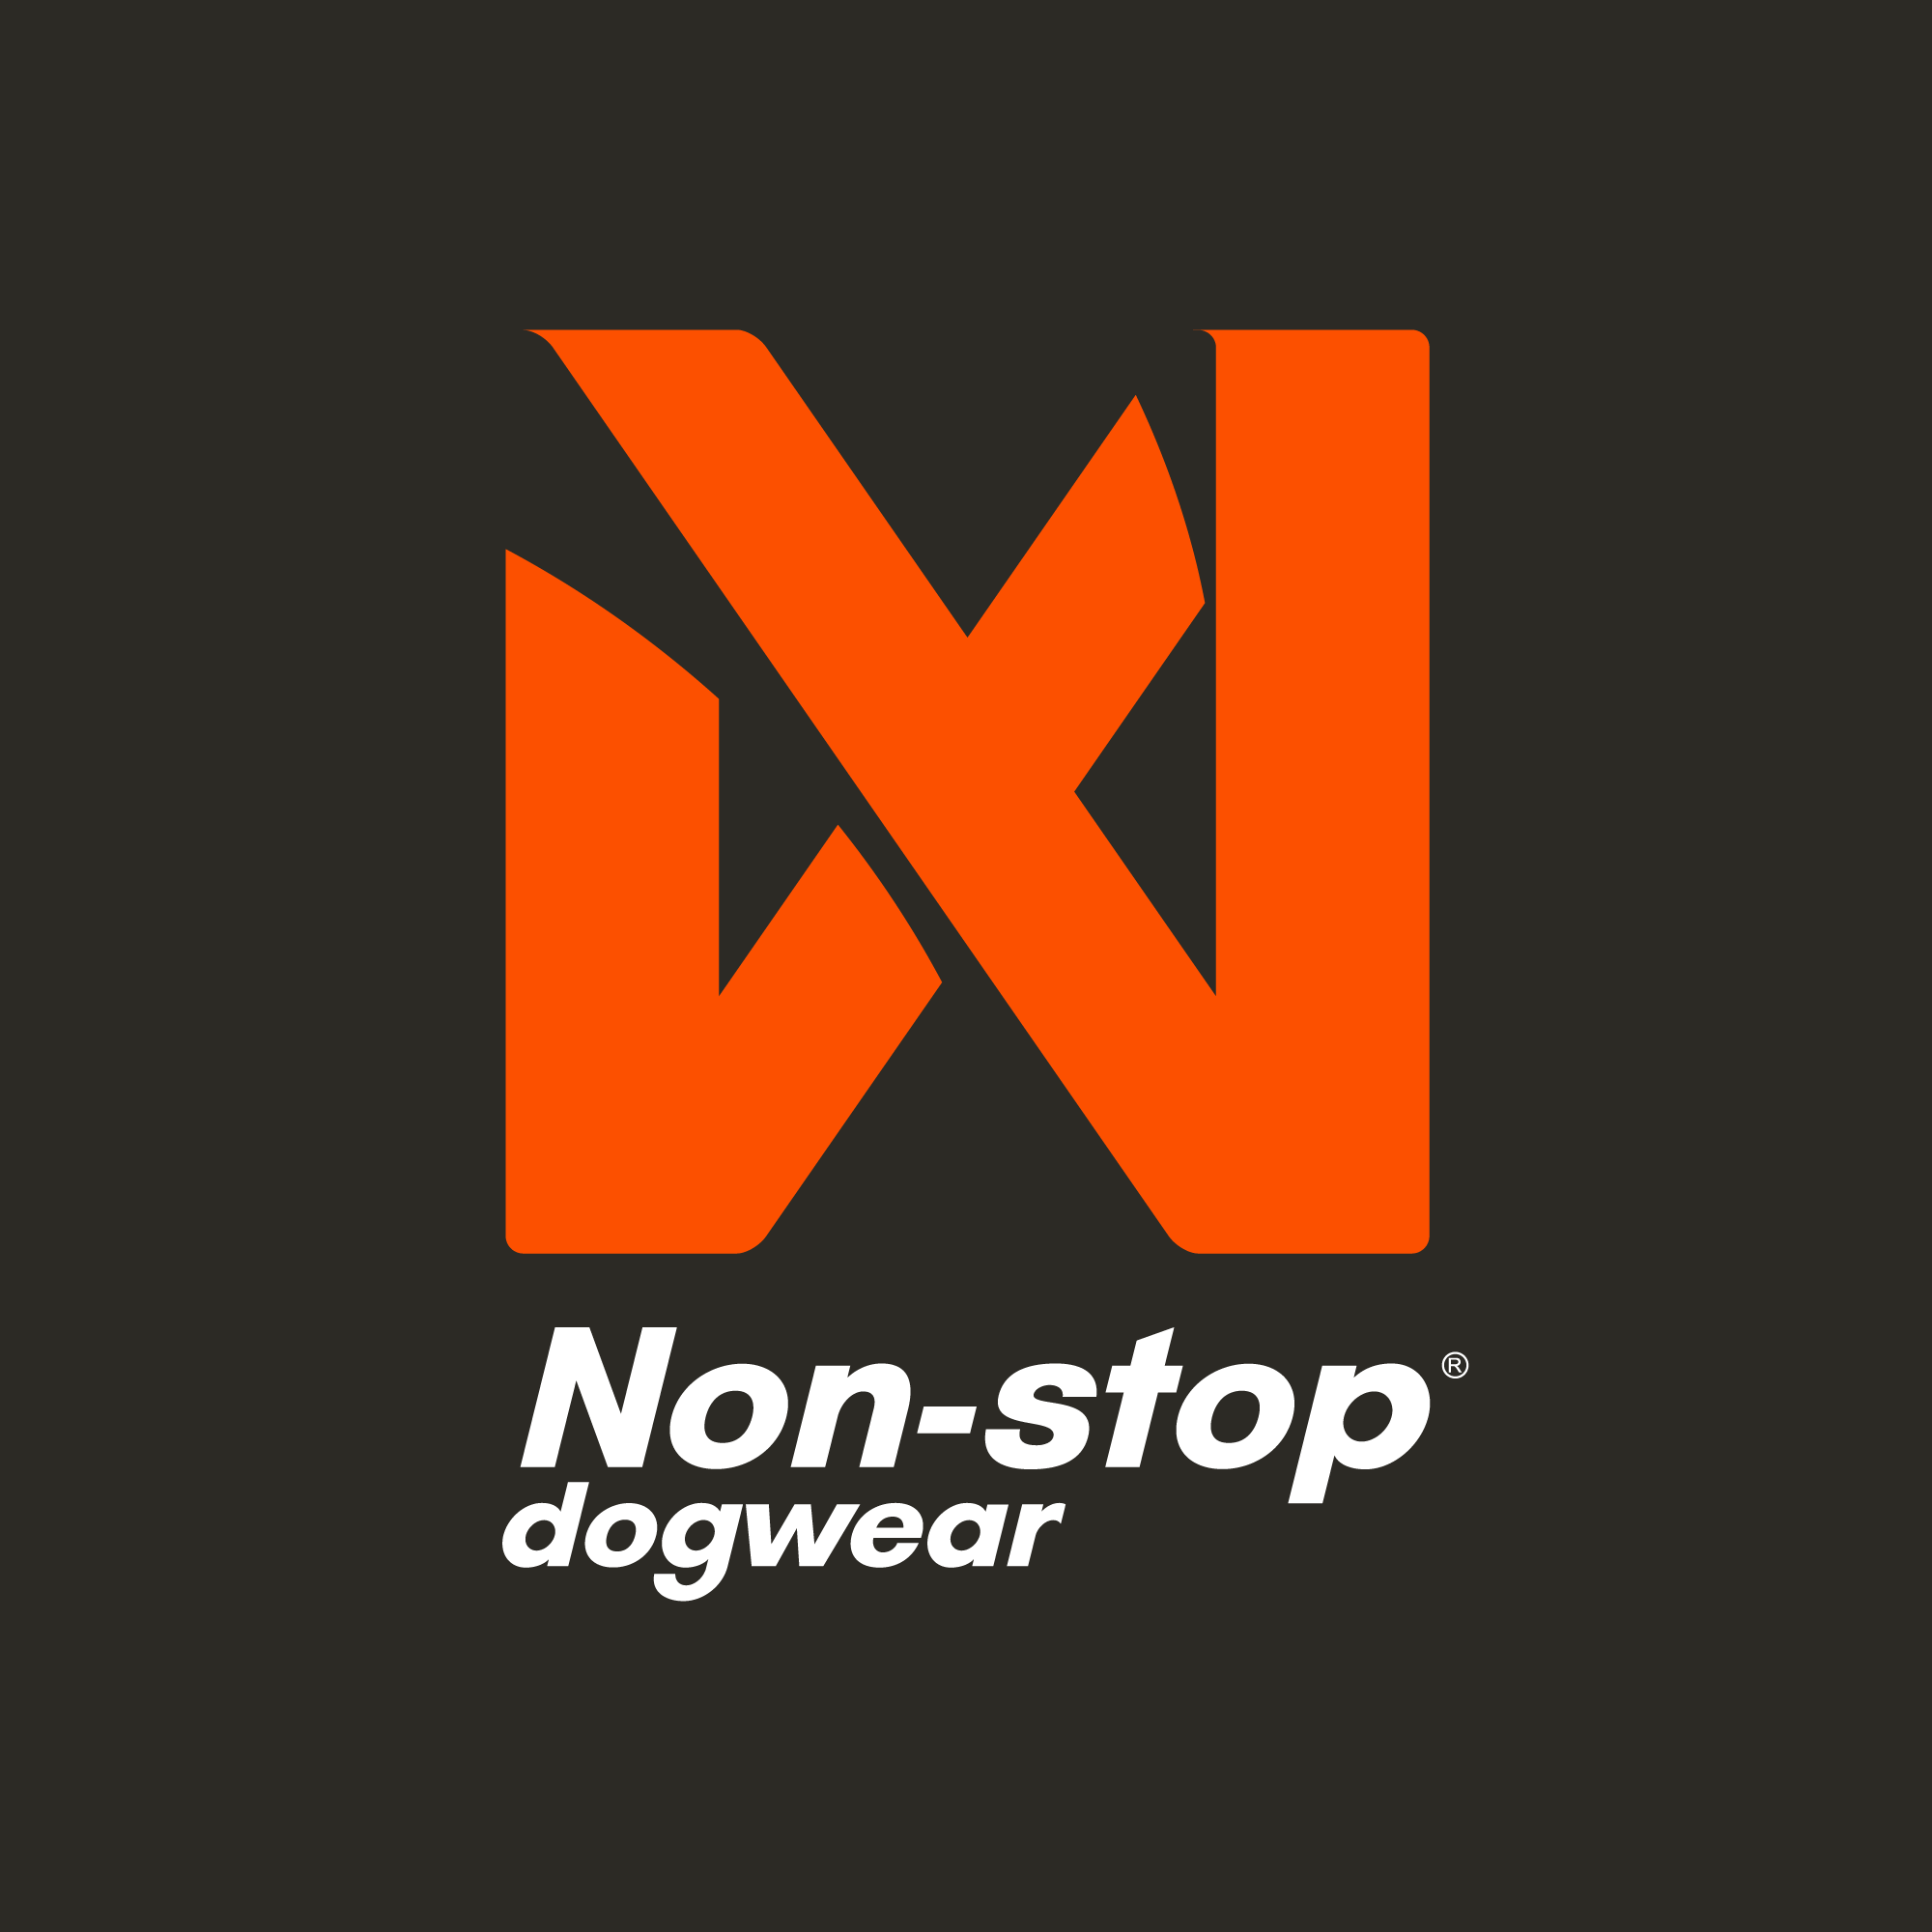 Non-stop dogwear AS